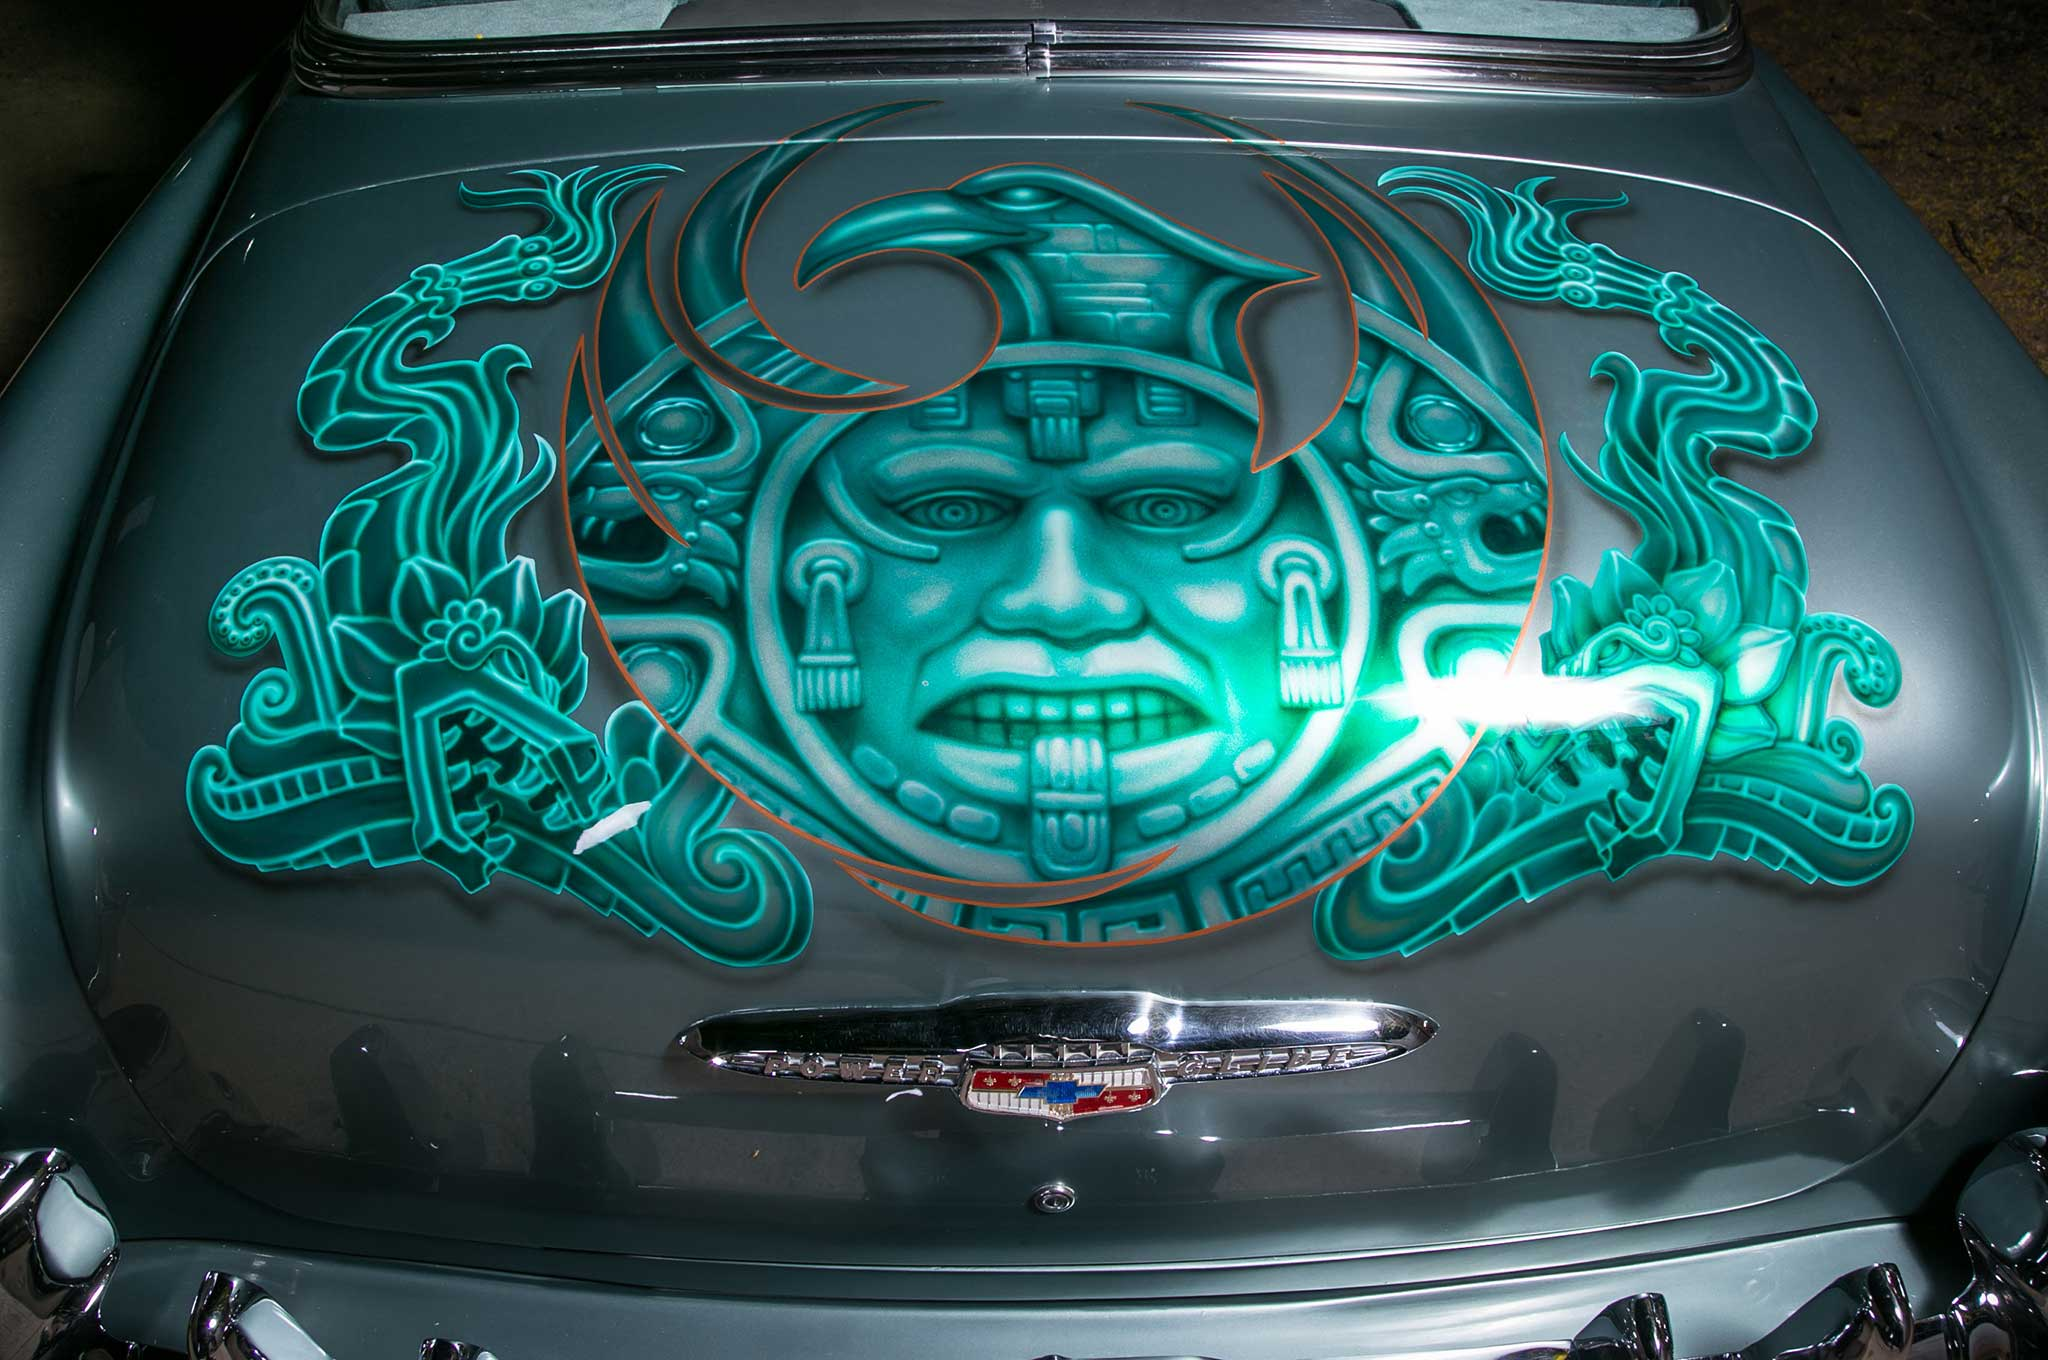 Chevy Aztec Themed Trunk Mural